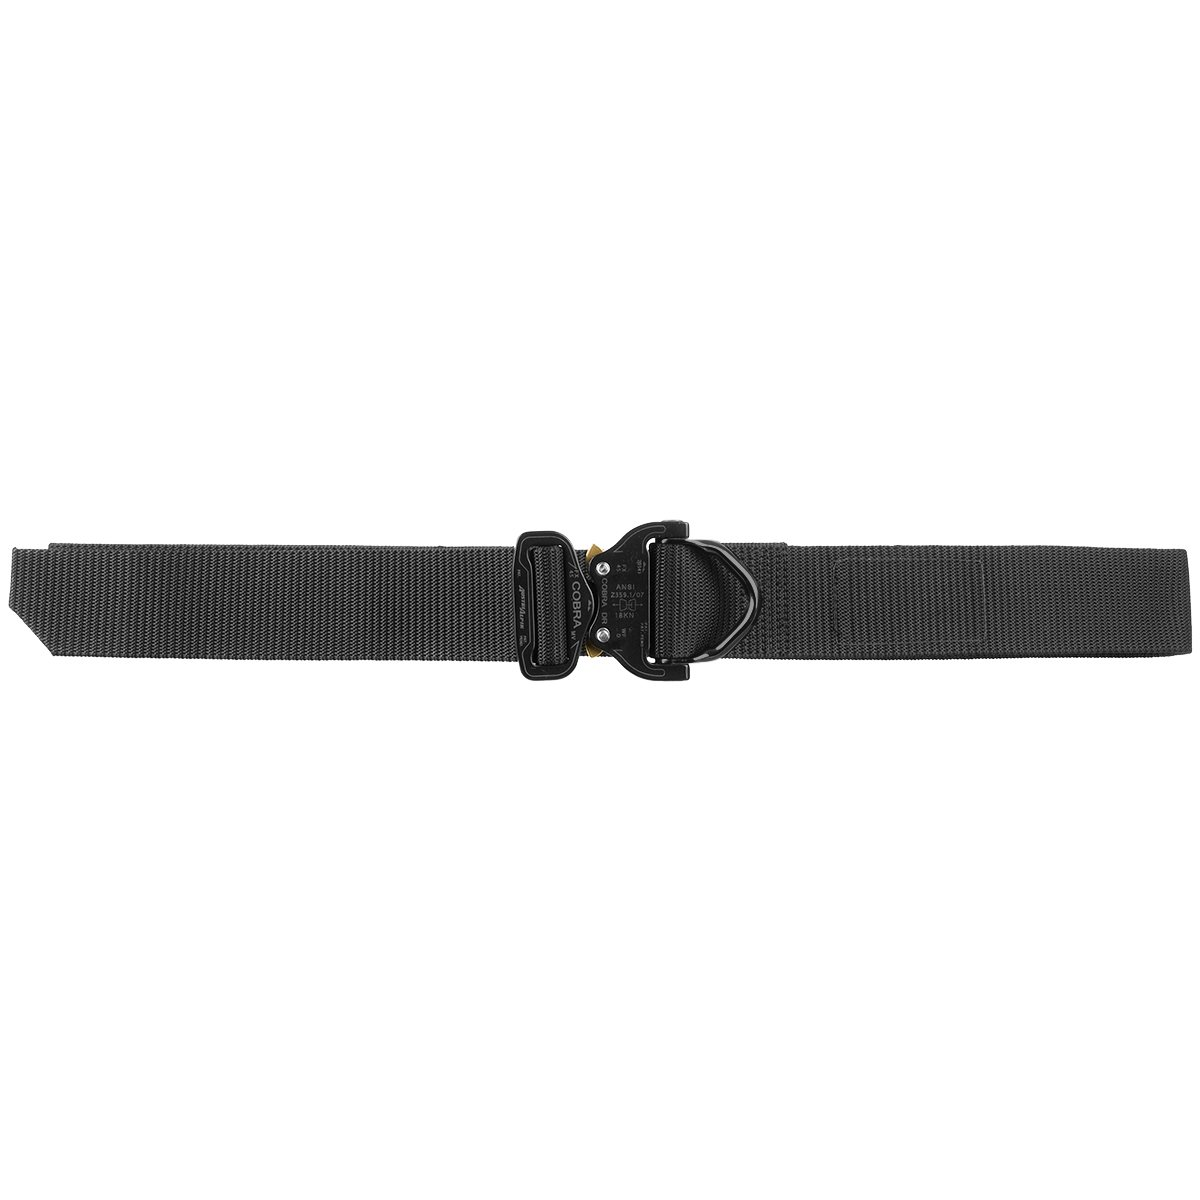 Cobra Tactical D-Ring Belt FX45 Black 51 Belt Length Up to 40 Pants Size HELIKON-TEX Patrol Line